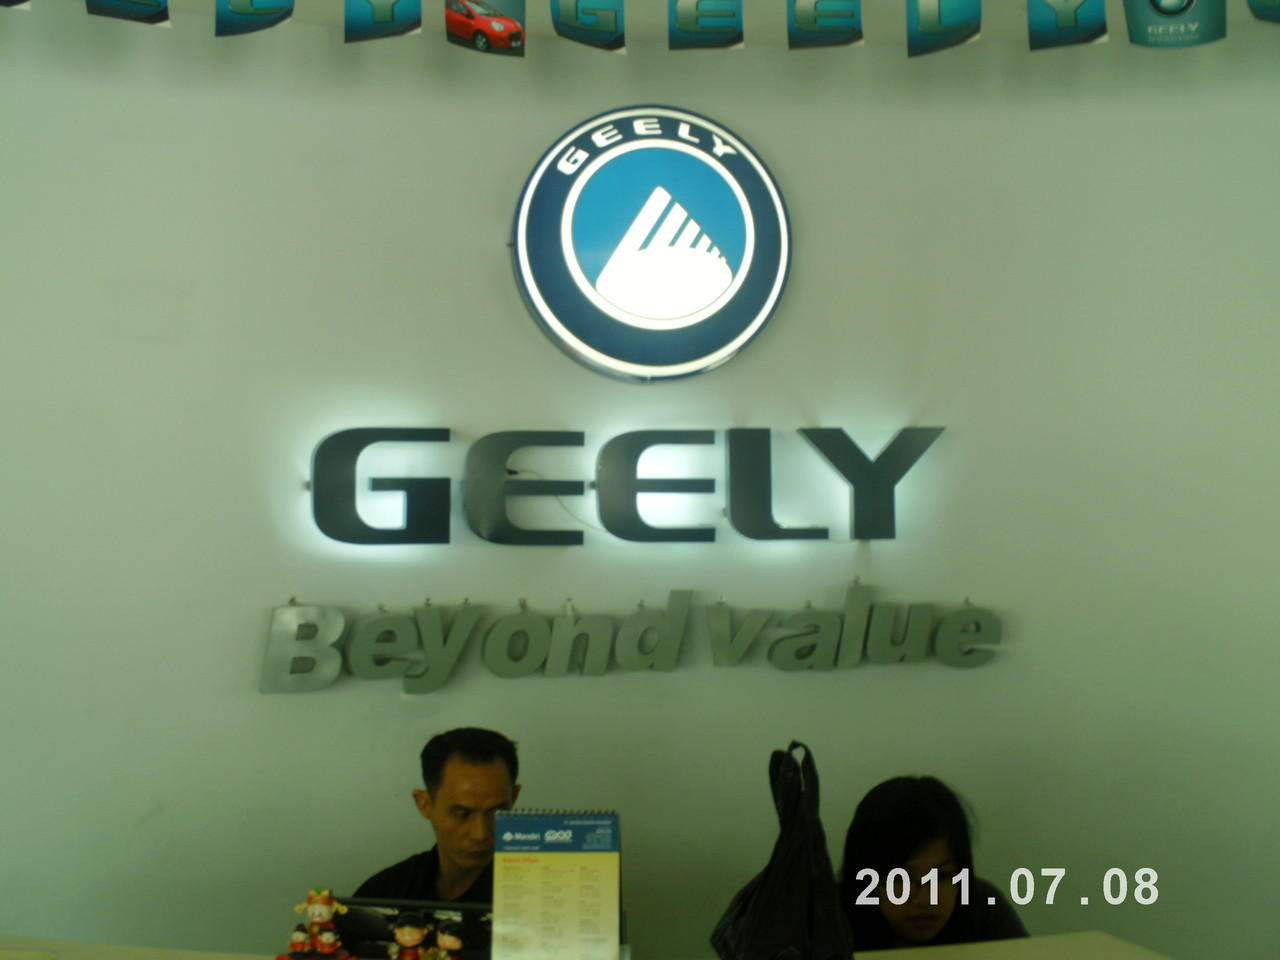 JASAPEMBUATANSIGNAGE,BILLBOARD,NEONBOX,NEON/PYLONSIGN,LETTER TIMBUL,PAJAK REKLAME By